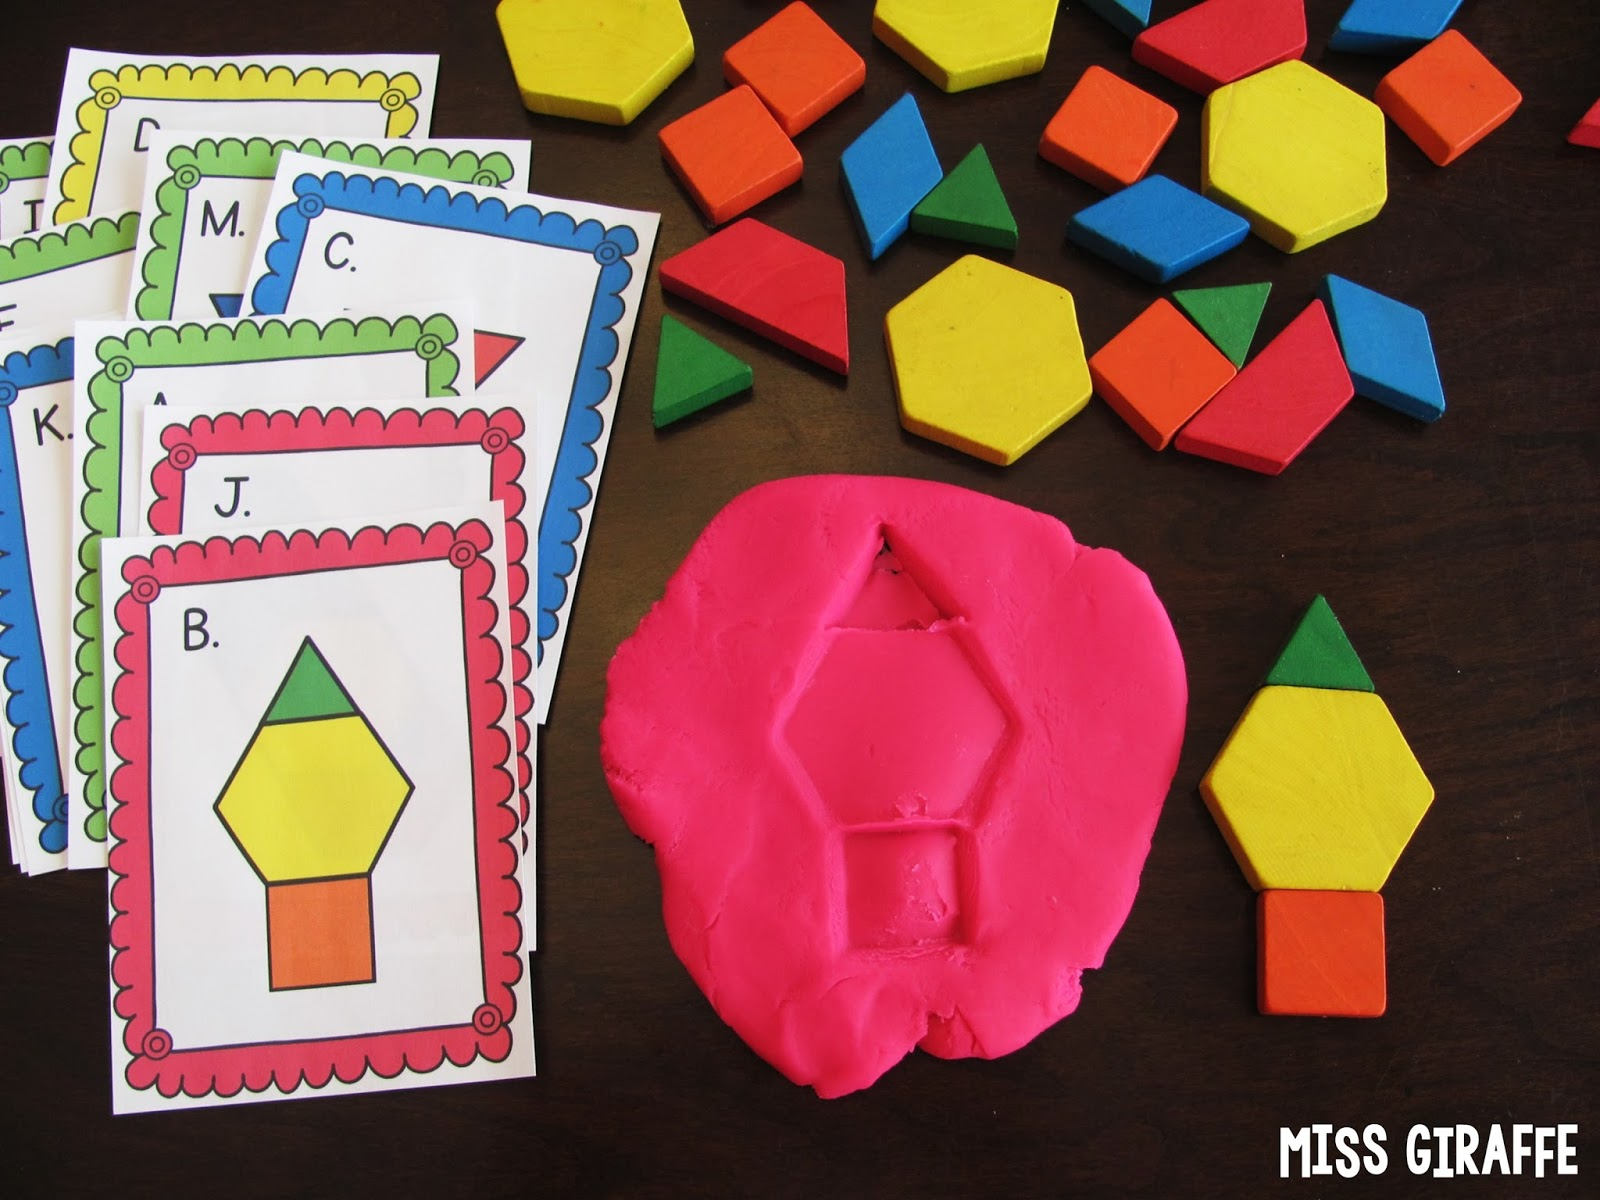 Miss Giraffes Class Composing Shapes in 1st Grade – Getting into Shapes Worksheet